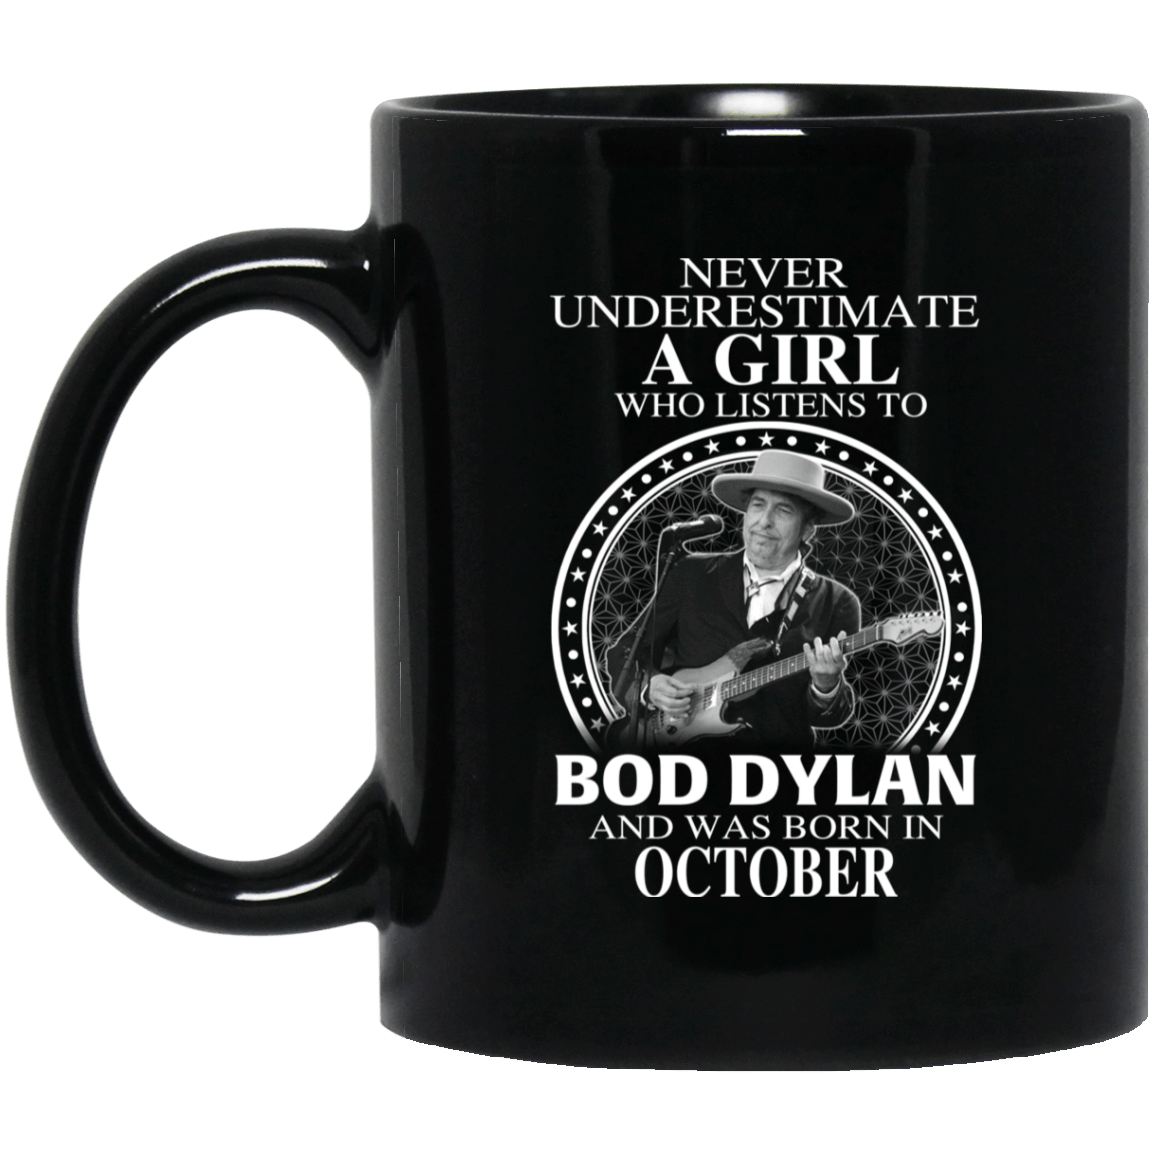 A Girl Who Listens To Bob Dylan And Was Born In October Mug 1065-10181-76154826-49307 - Tee Ript